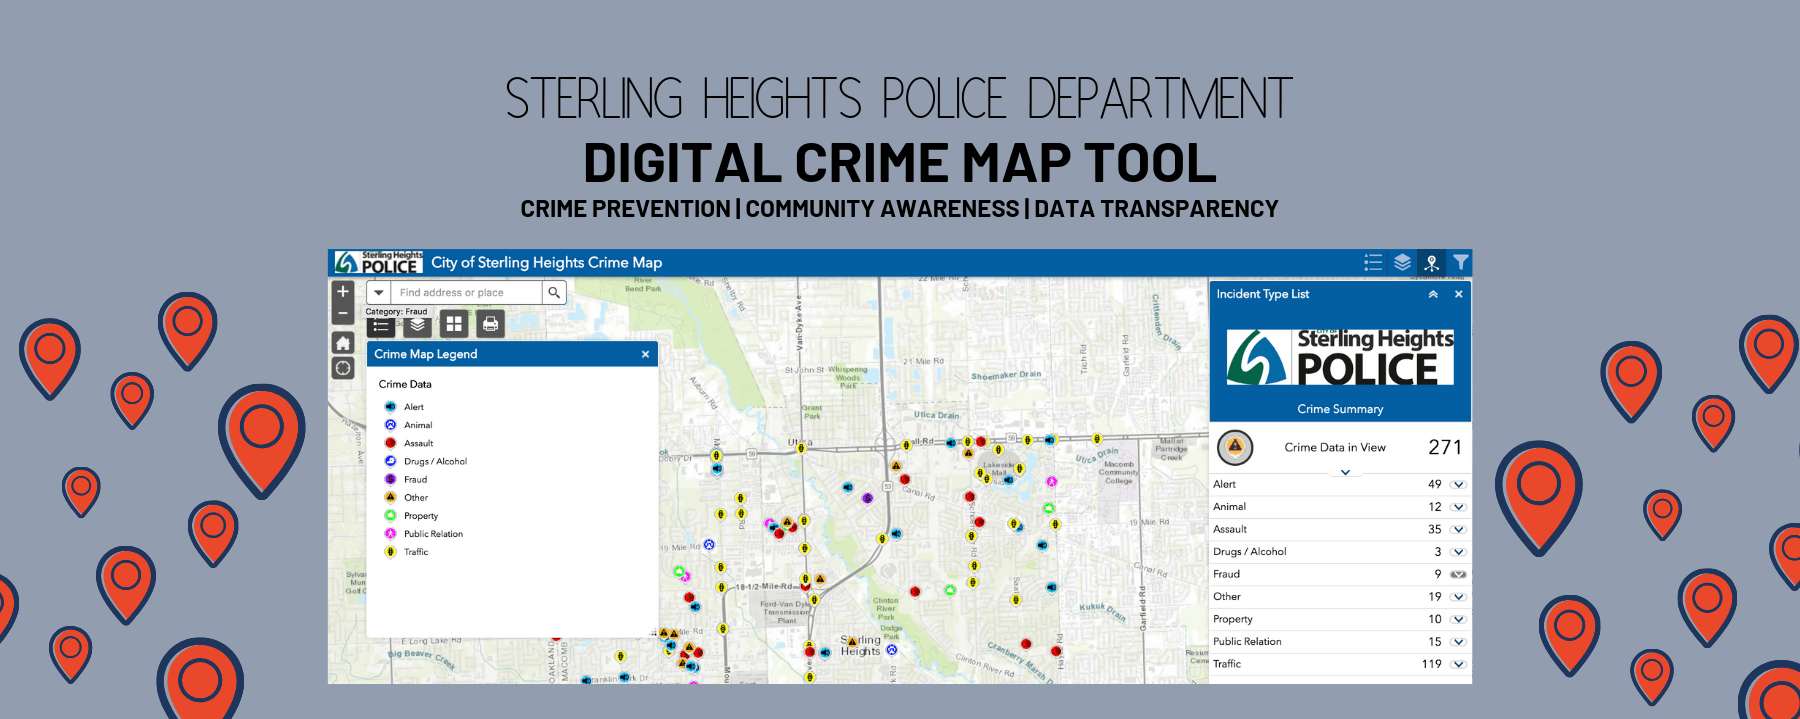 DIGITAL CRIME MAP TOOL